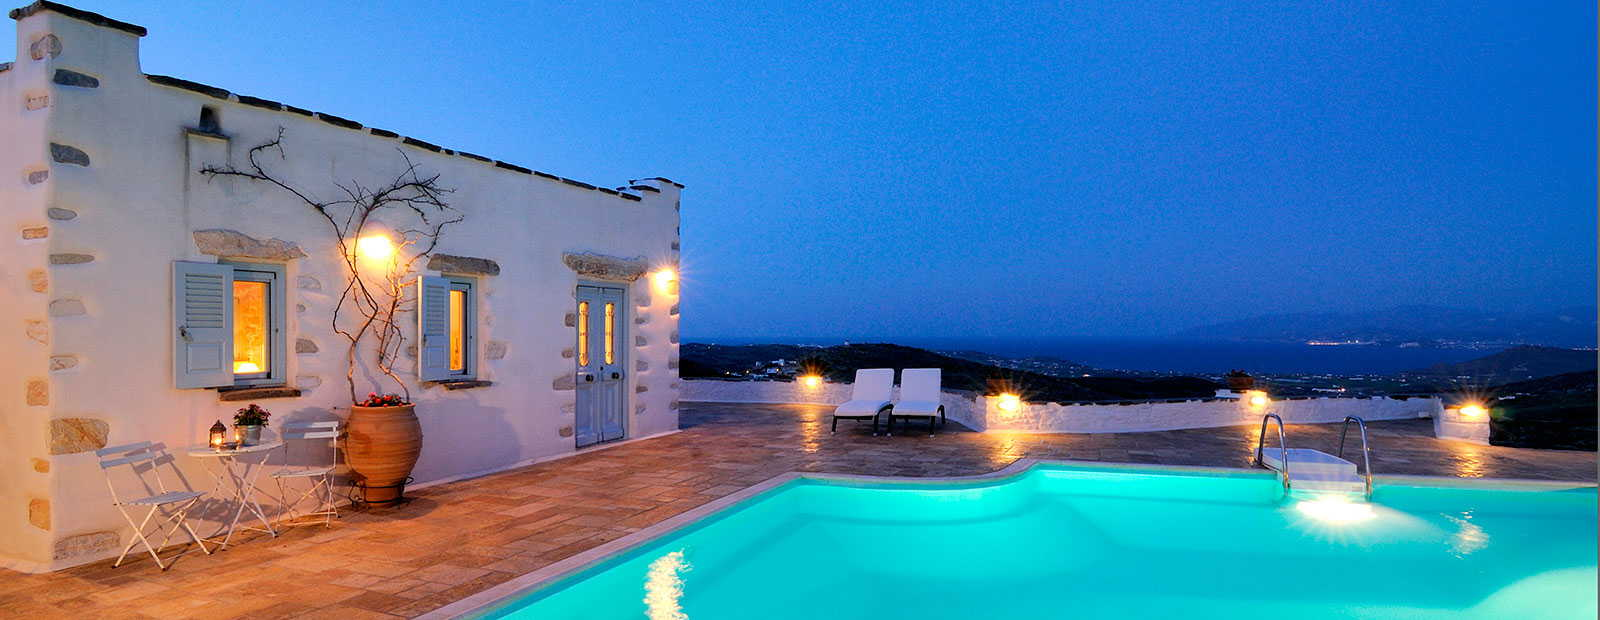 Luxurious holiday homes in the Cyklades